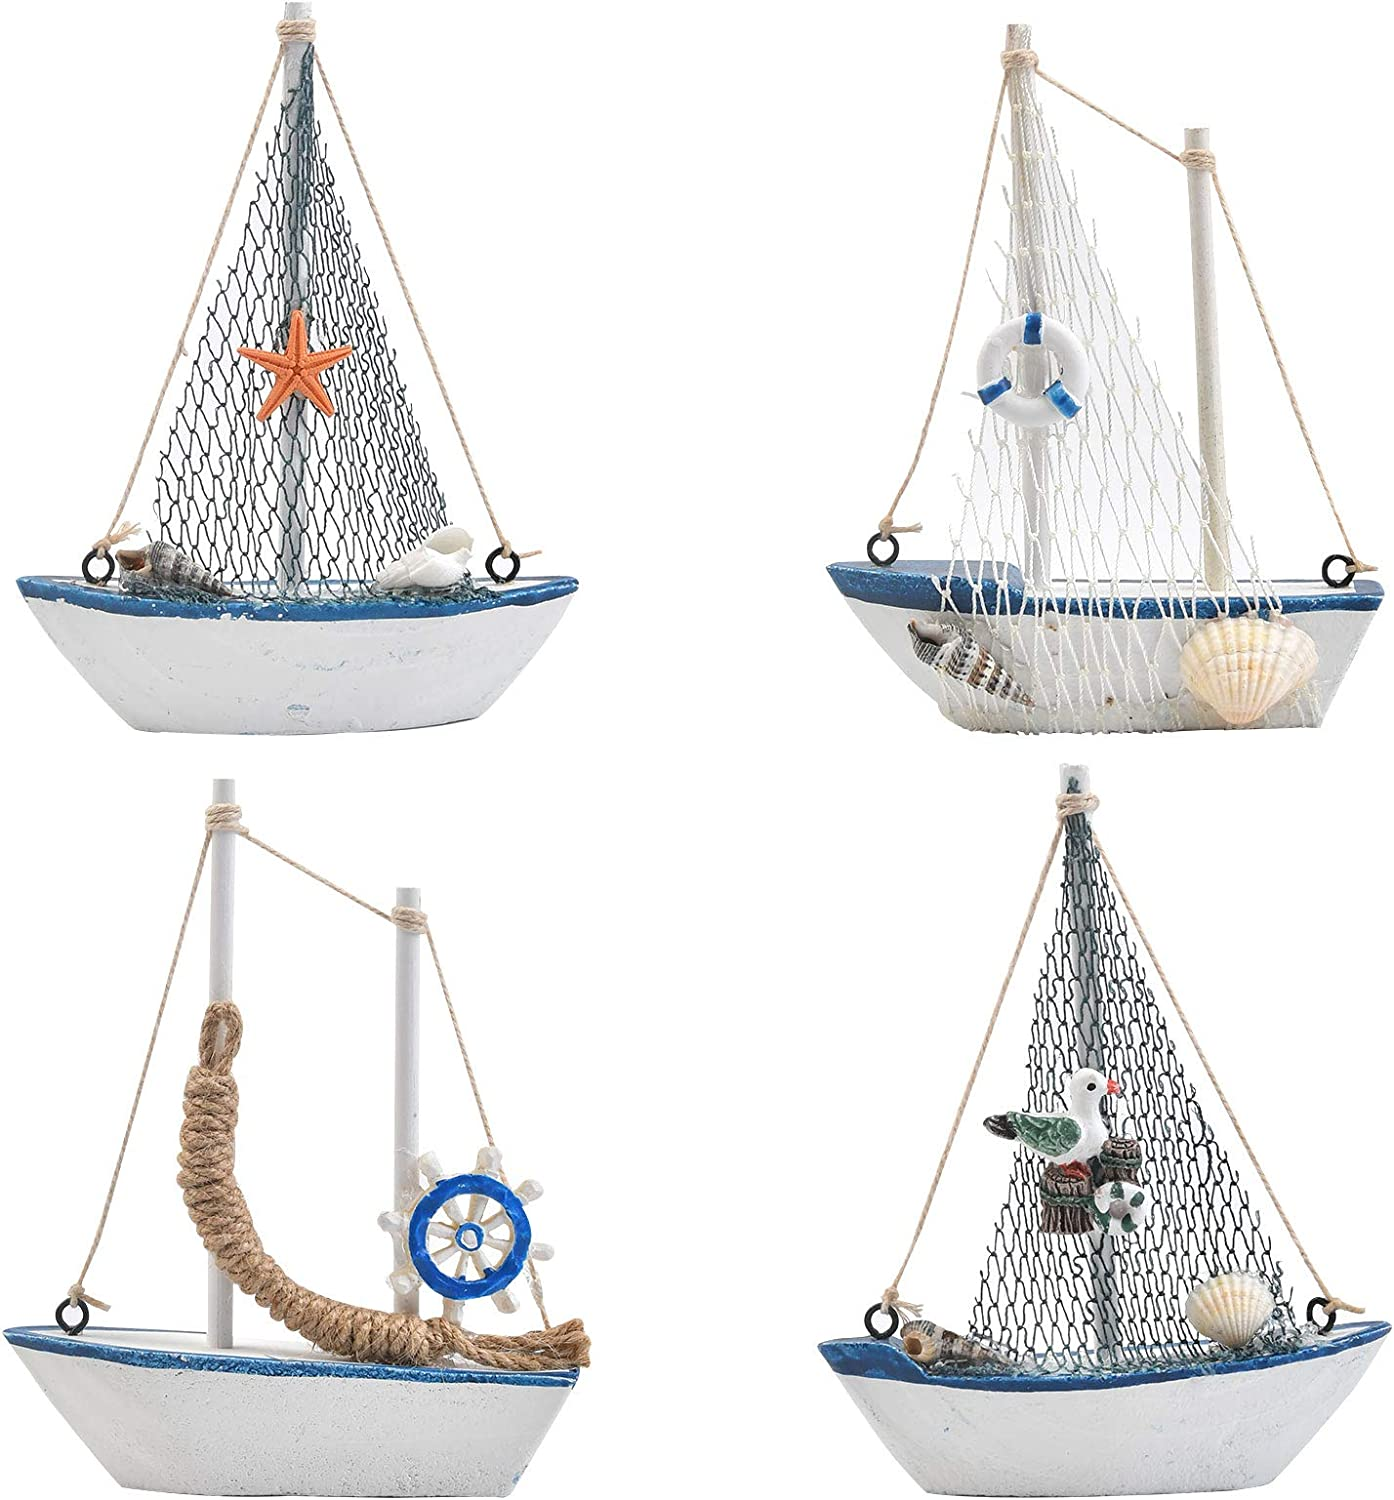 BUYGOO 4 Pack Mini Sailboat Model Decoration, Wooden Miniature Sailing Boat Home Decor Set, Beach Nautical Design, Navy Blue and White, for Ocean Theme Decoration, 4.3 x 5.3 x 1.25 Inches (4 Different Design)